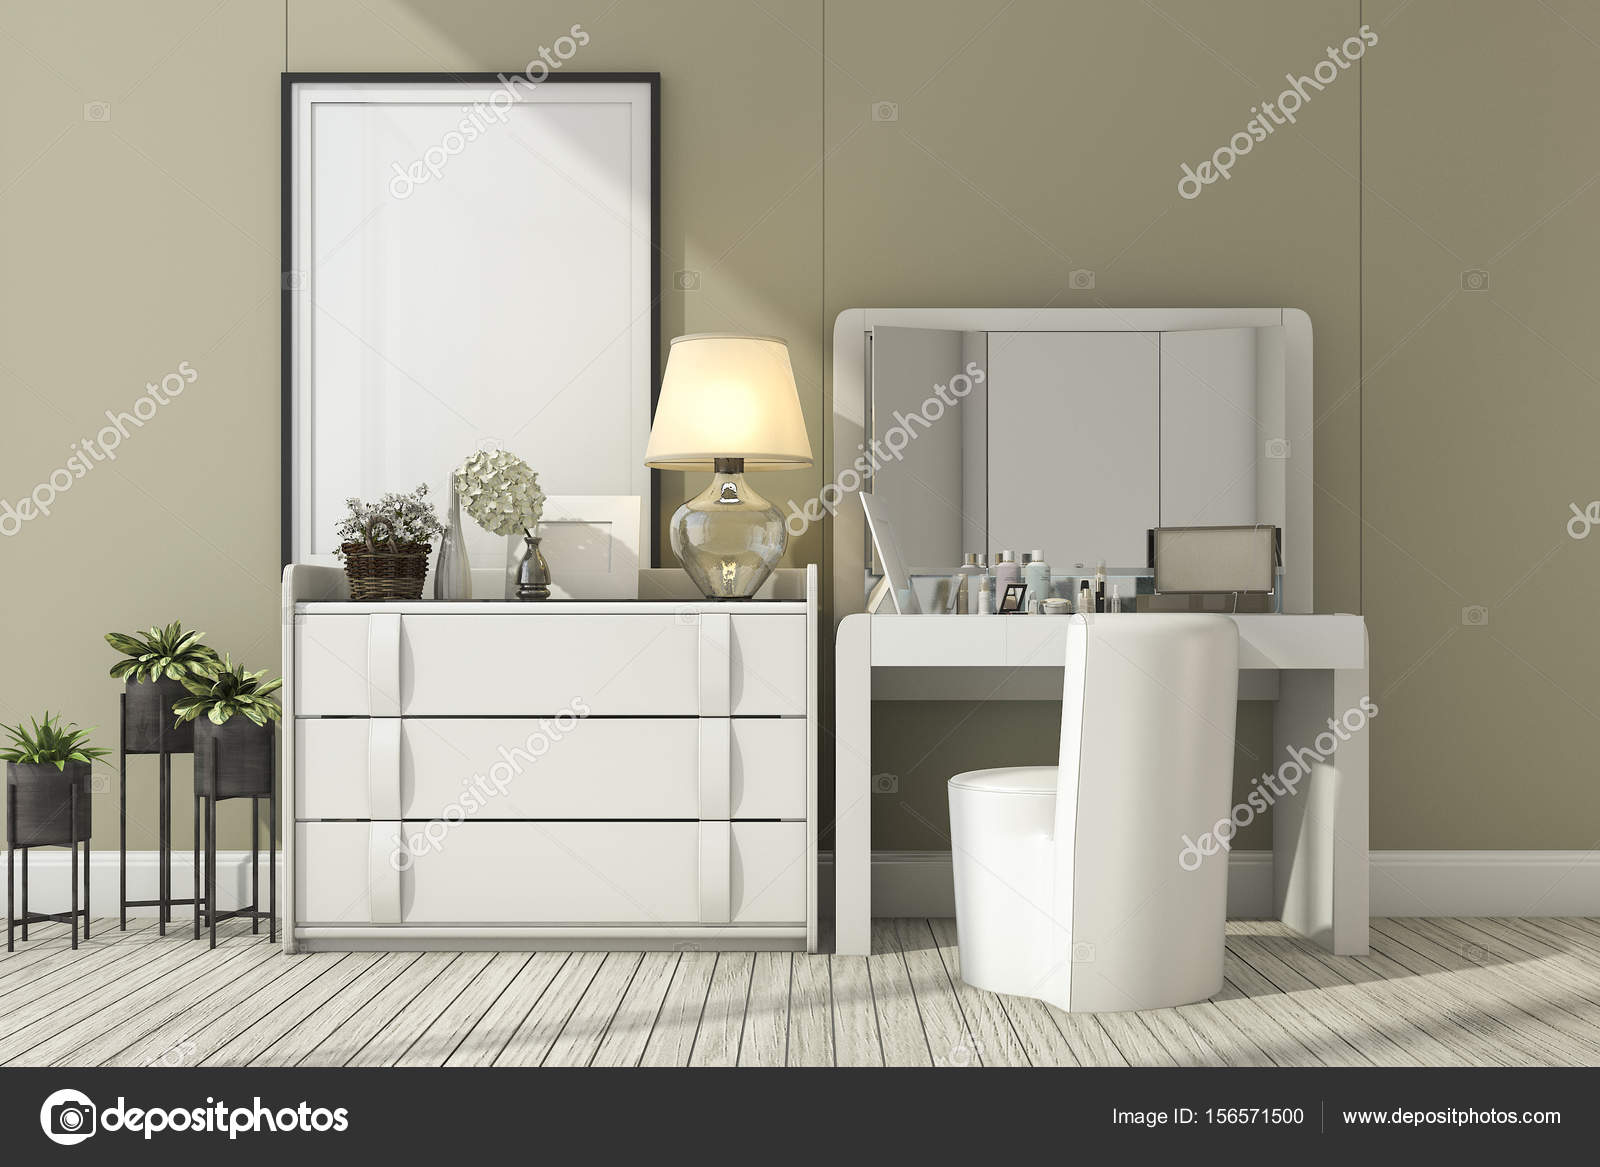 Design Ladekast Slaapkamer.3d Rendering Classic White Room With Make Up Table Stock